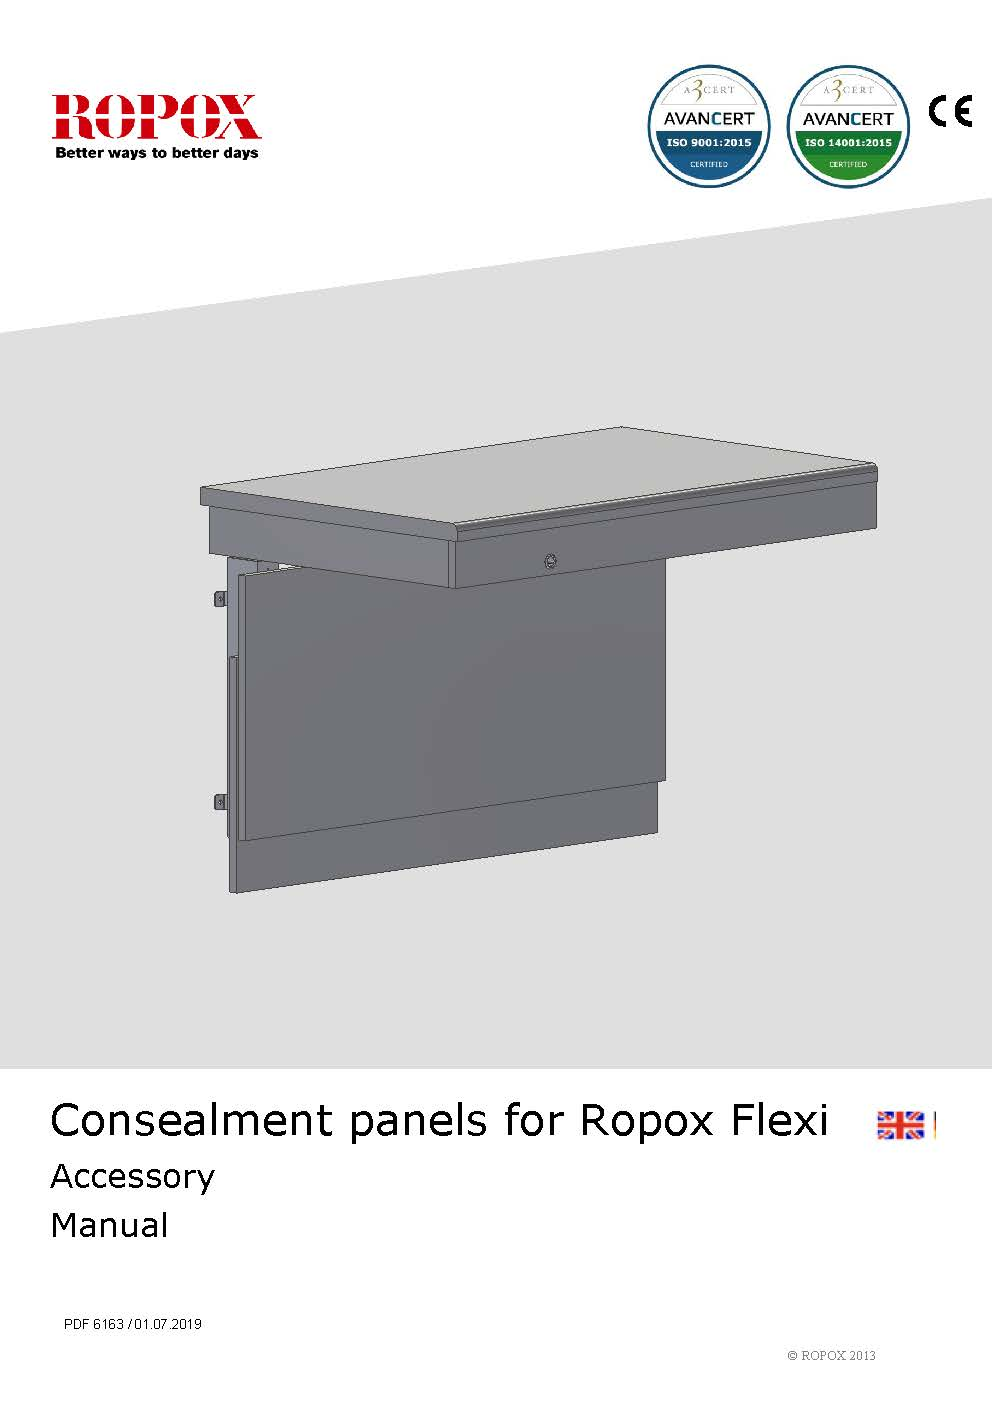 Ropox user & mounting manual - Accesory Consealment panels Flexi worktops